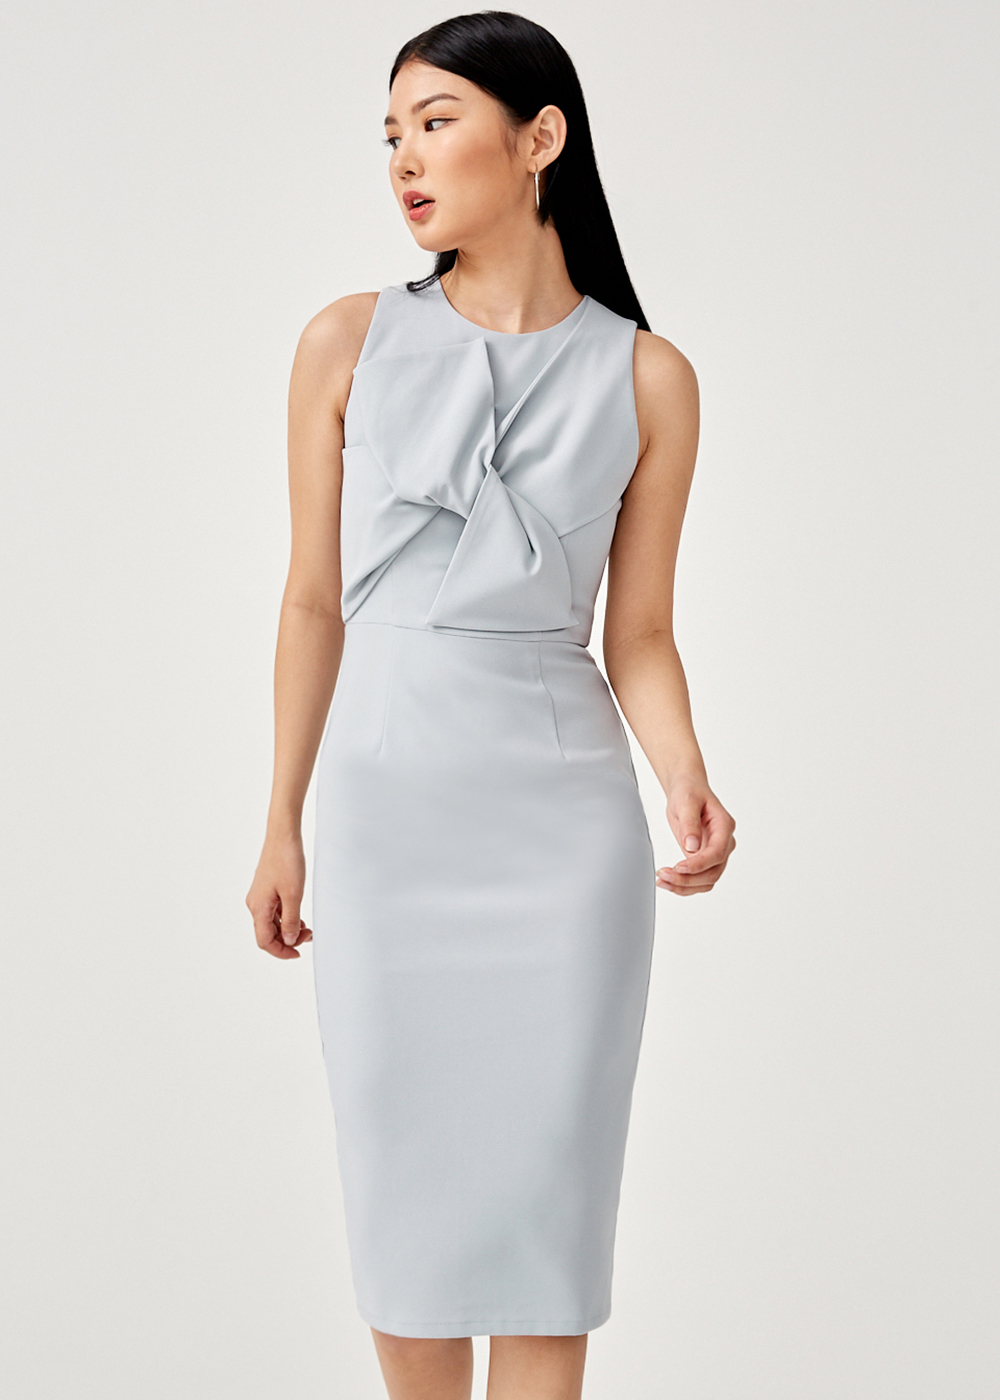 Lauretta Knot Front Bodycon Dress